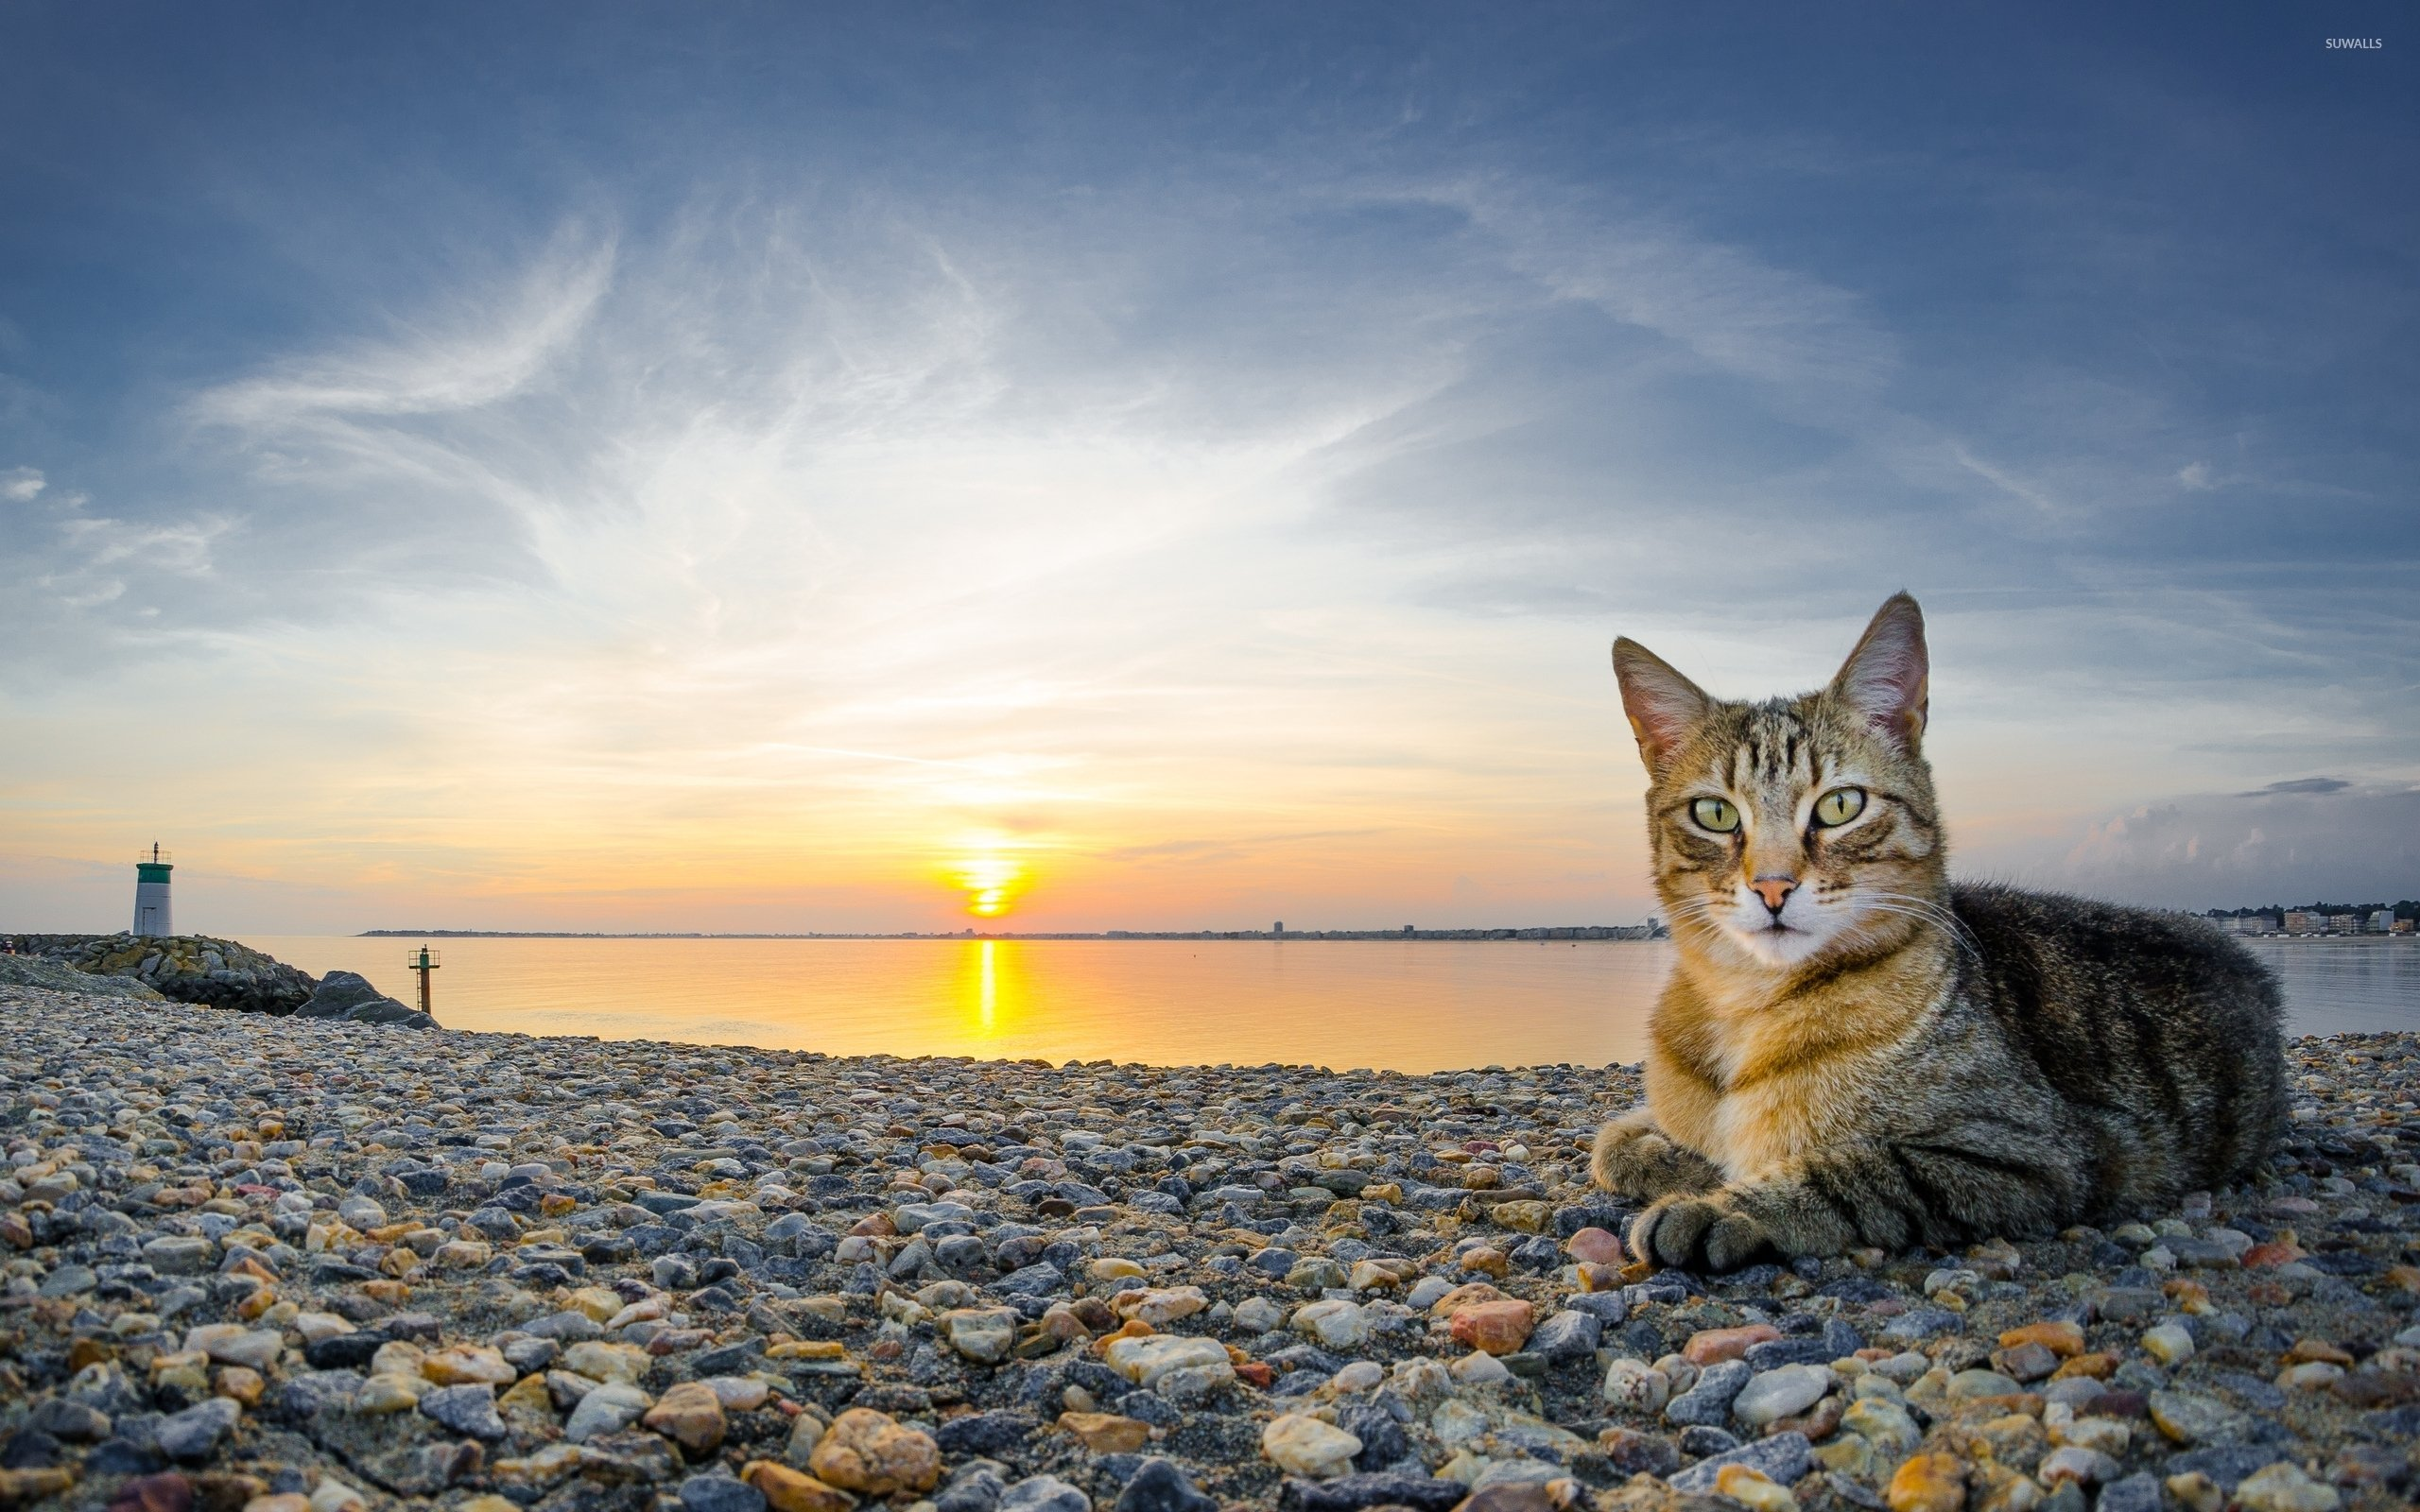 Cat on a rocky sunset beach wallpaper   Animal wallpapers   39661 2560x1600